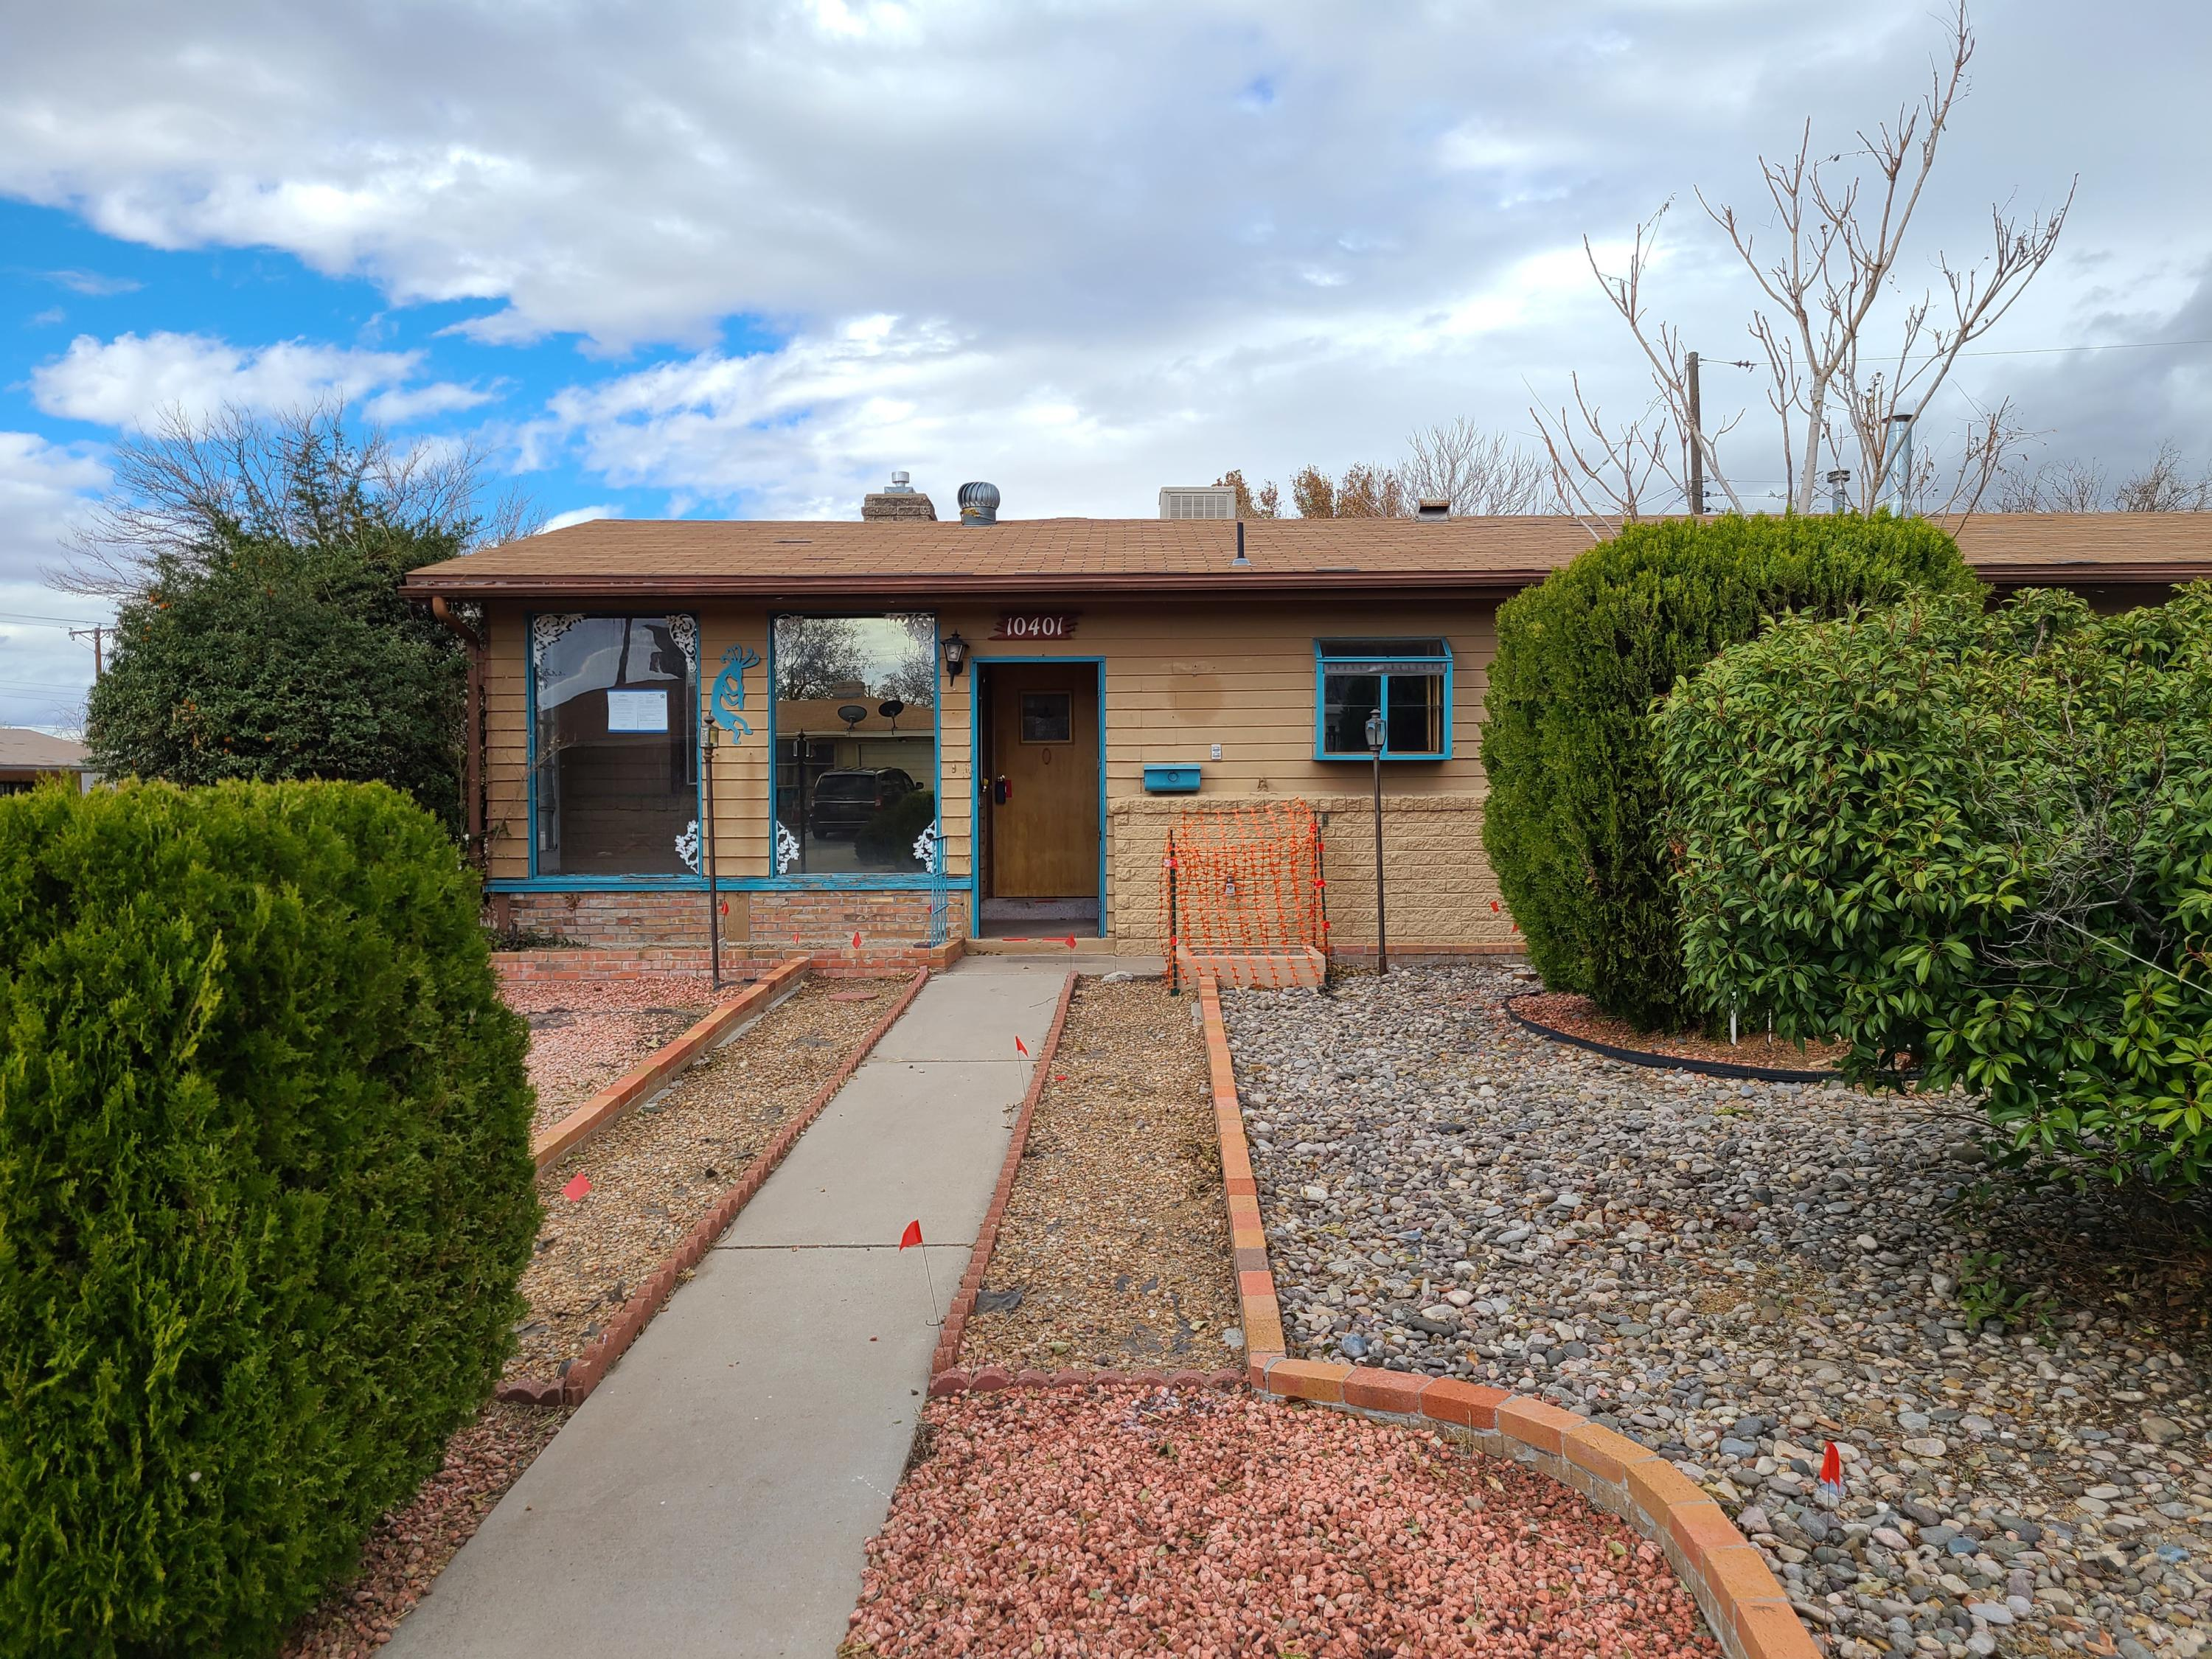 ''HUD Homes are Sold As Is''Case # 361-386431Place your Bid @ HUDHOMEStore.comwww.chronossolutions.comwww.HUDHOMEStore.comThis Coner lot, 3 bedroom 2 bath brick home is only 1.8 miles fro onate Elementary School, and only 1/3 of mile to Jackson Middle School, and only 1.4 Miles to Monzano High School. 2 Living areas, lovely living room with fireplace. A big den/family room to goes out to your private fenced backyard.